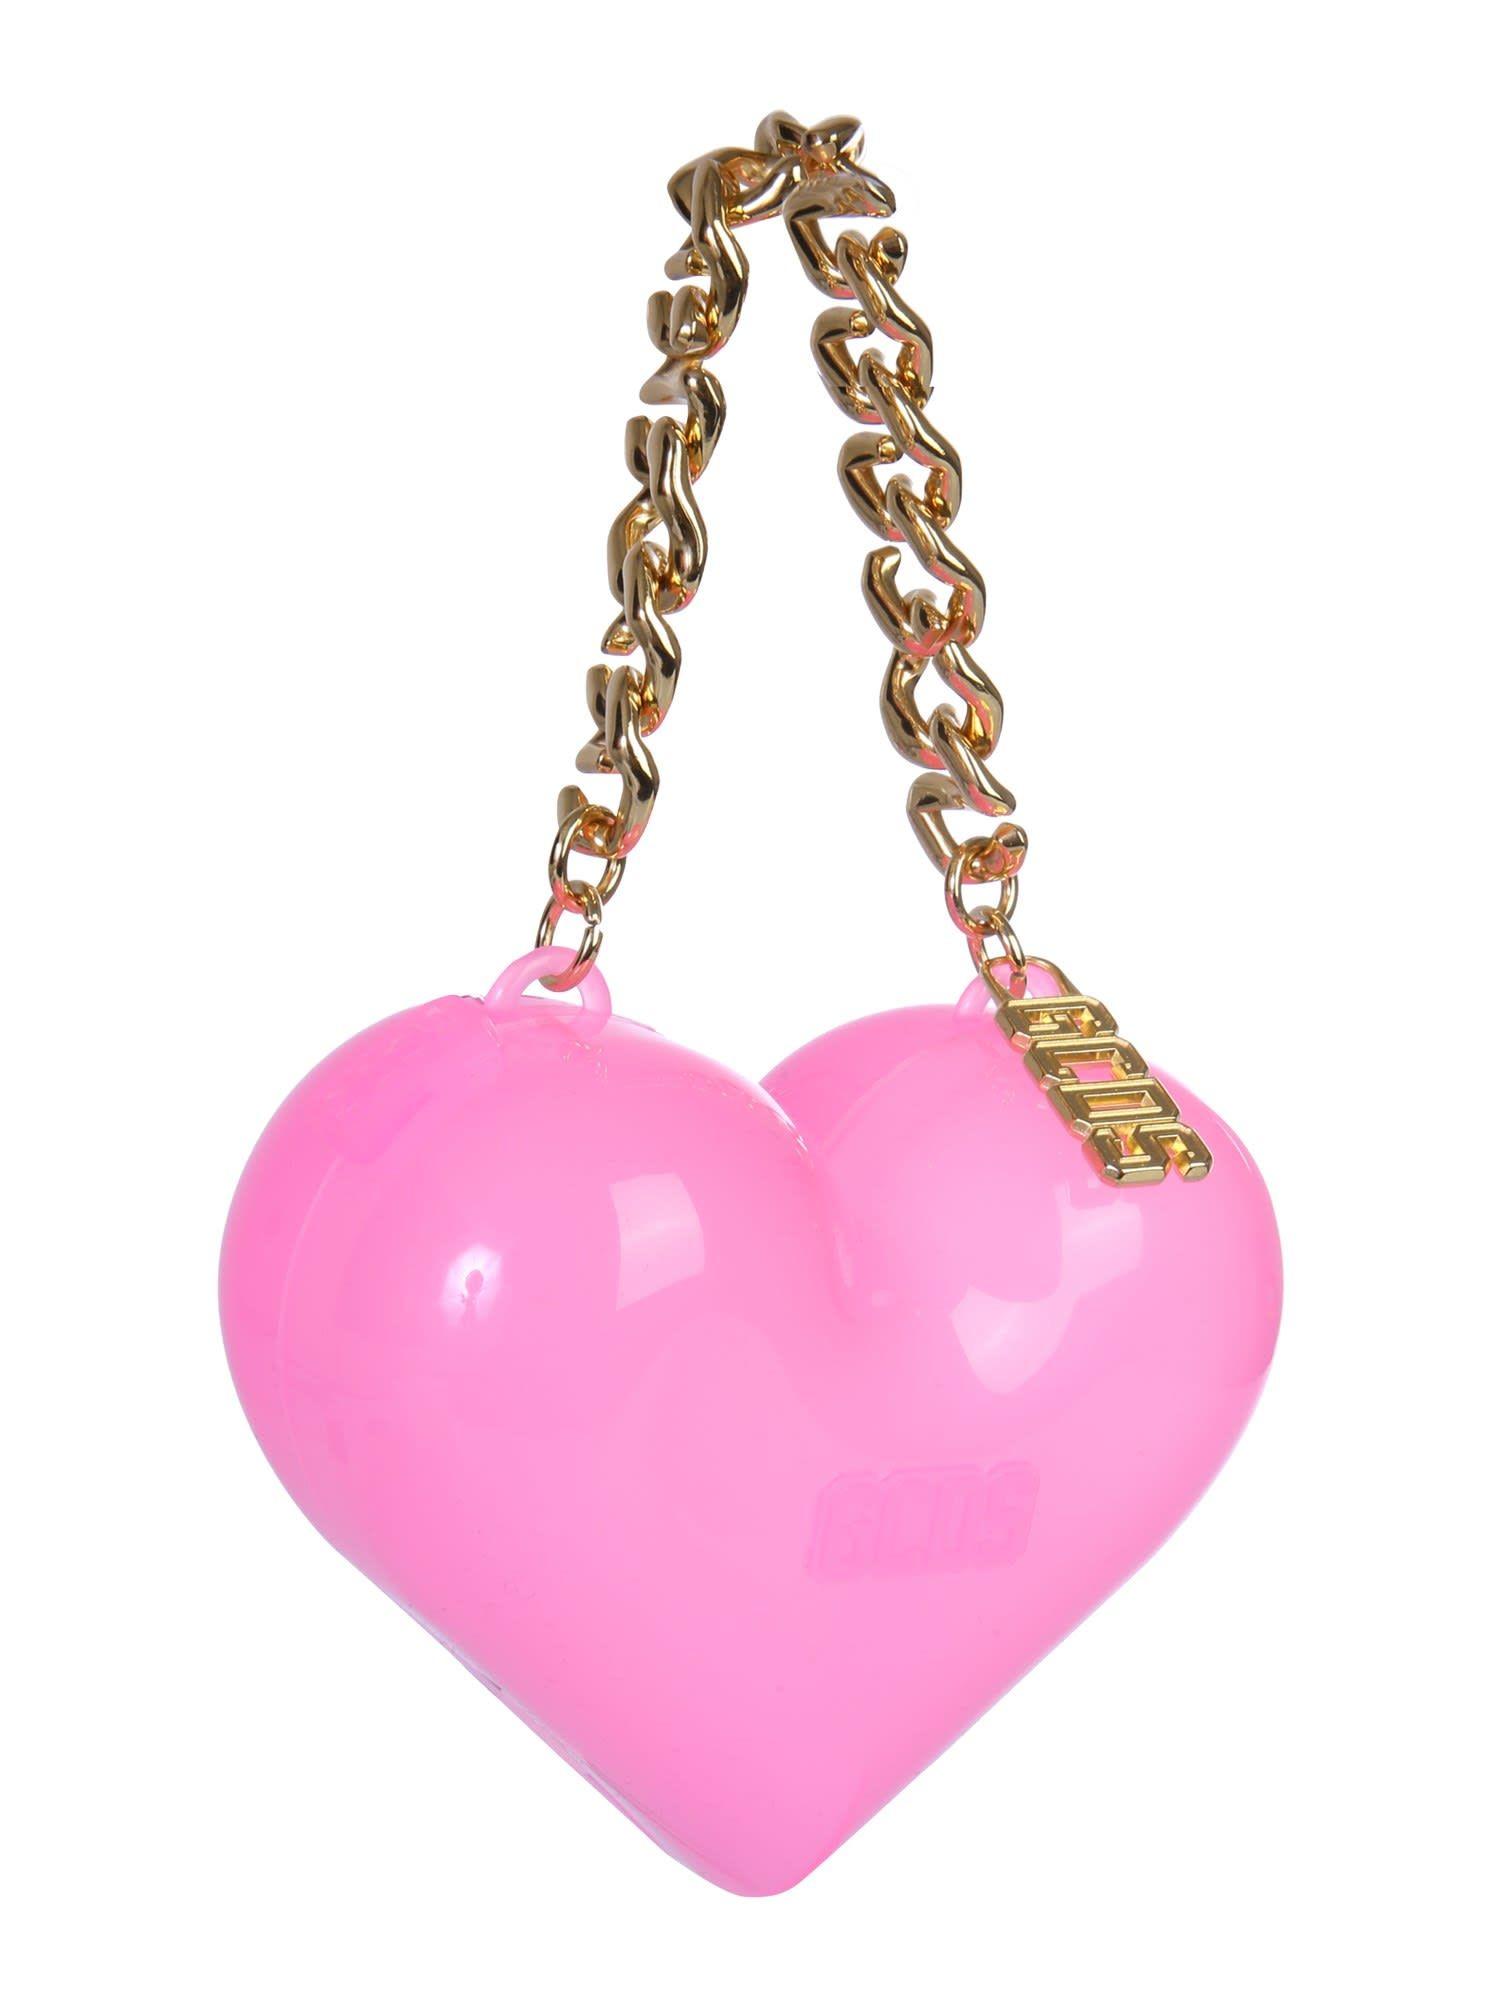 Best Price On The Market At Italist Gcds Gcds Muse Heart Bag Heart Bag Bags Orange Band